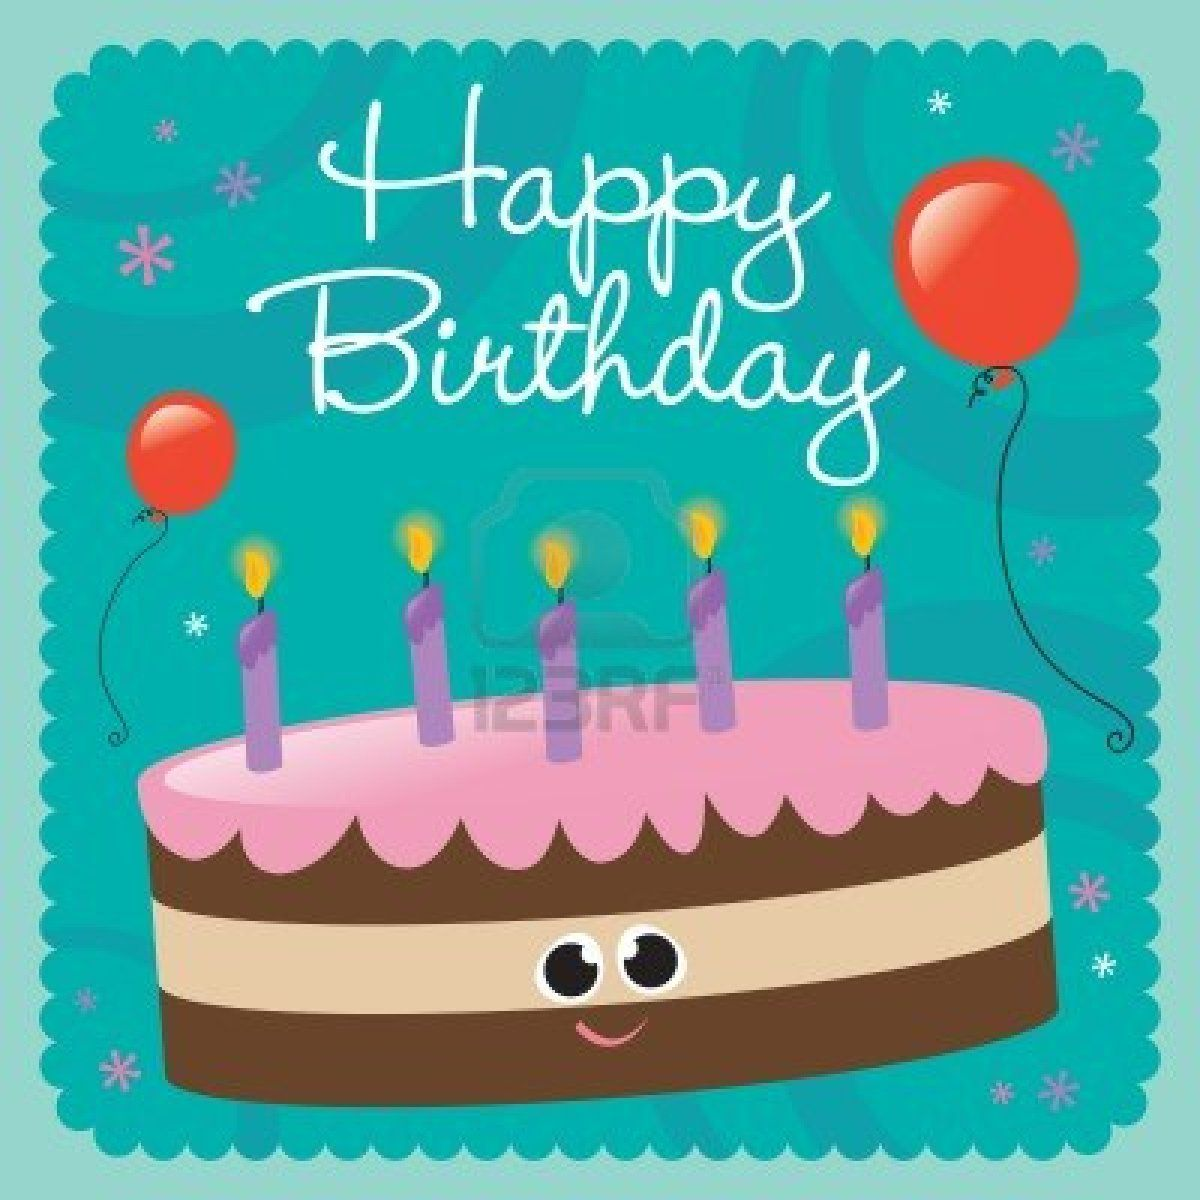 Happy Birthday Cards Happy Birthday Pinterest – A Birthday Card